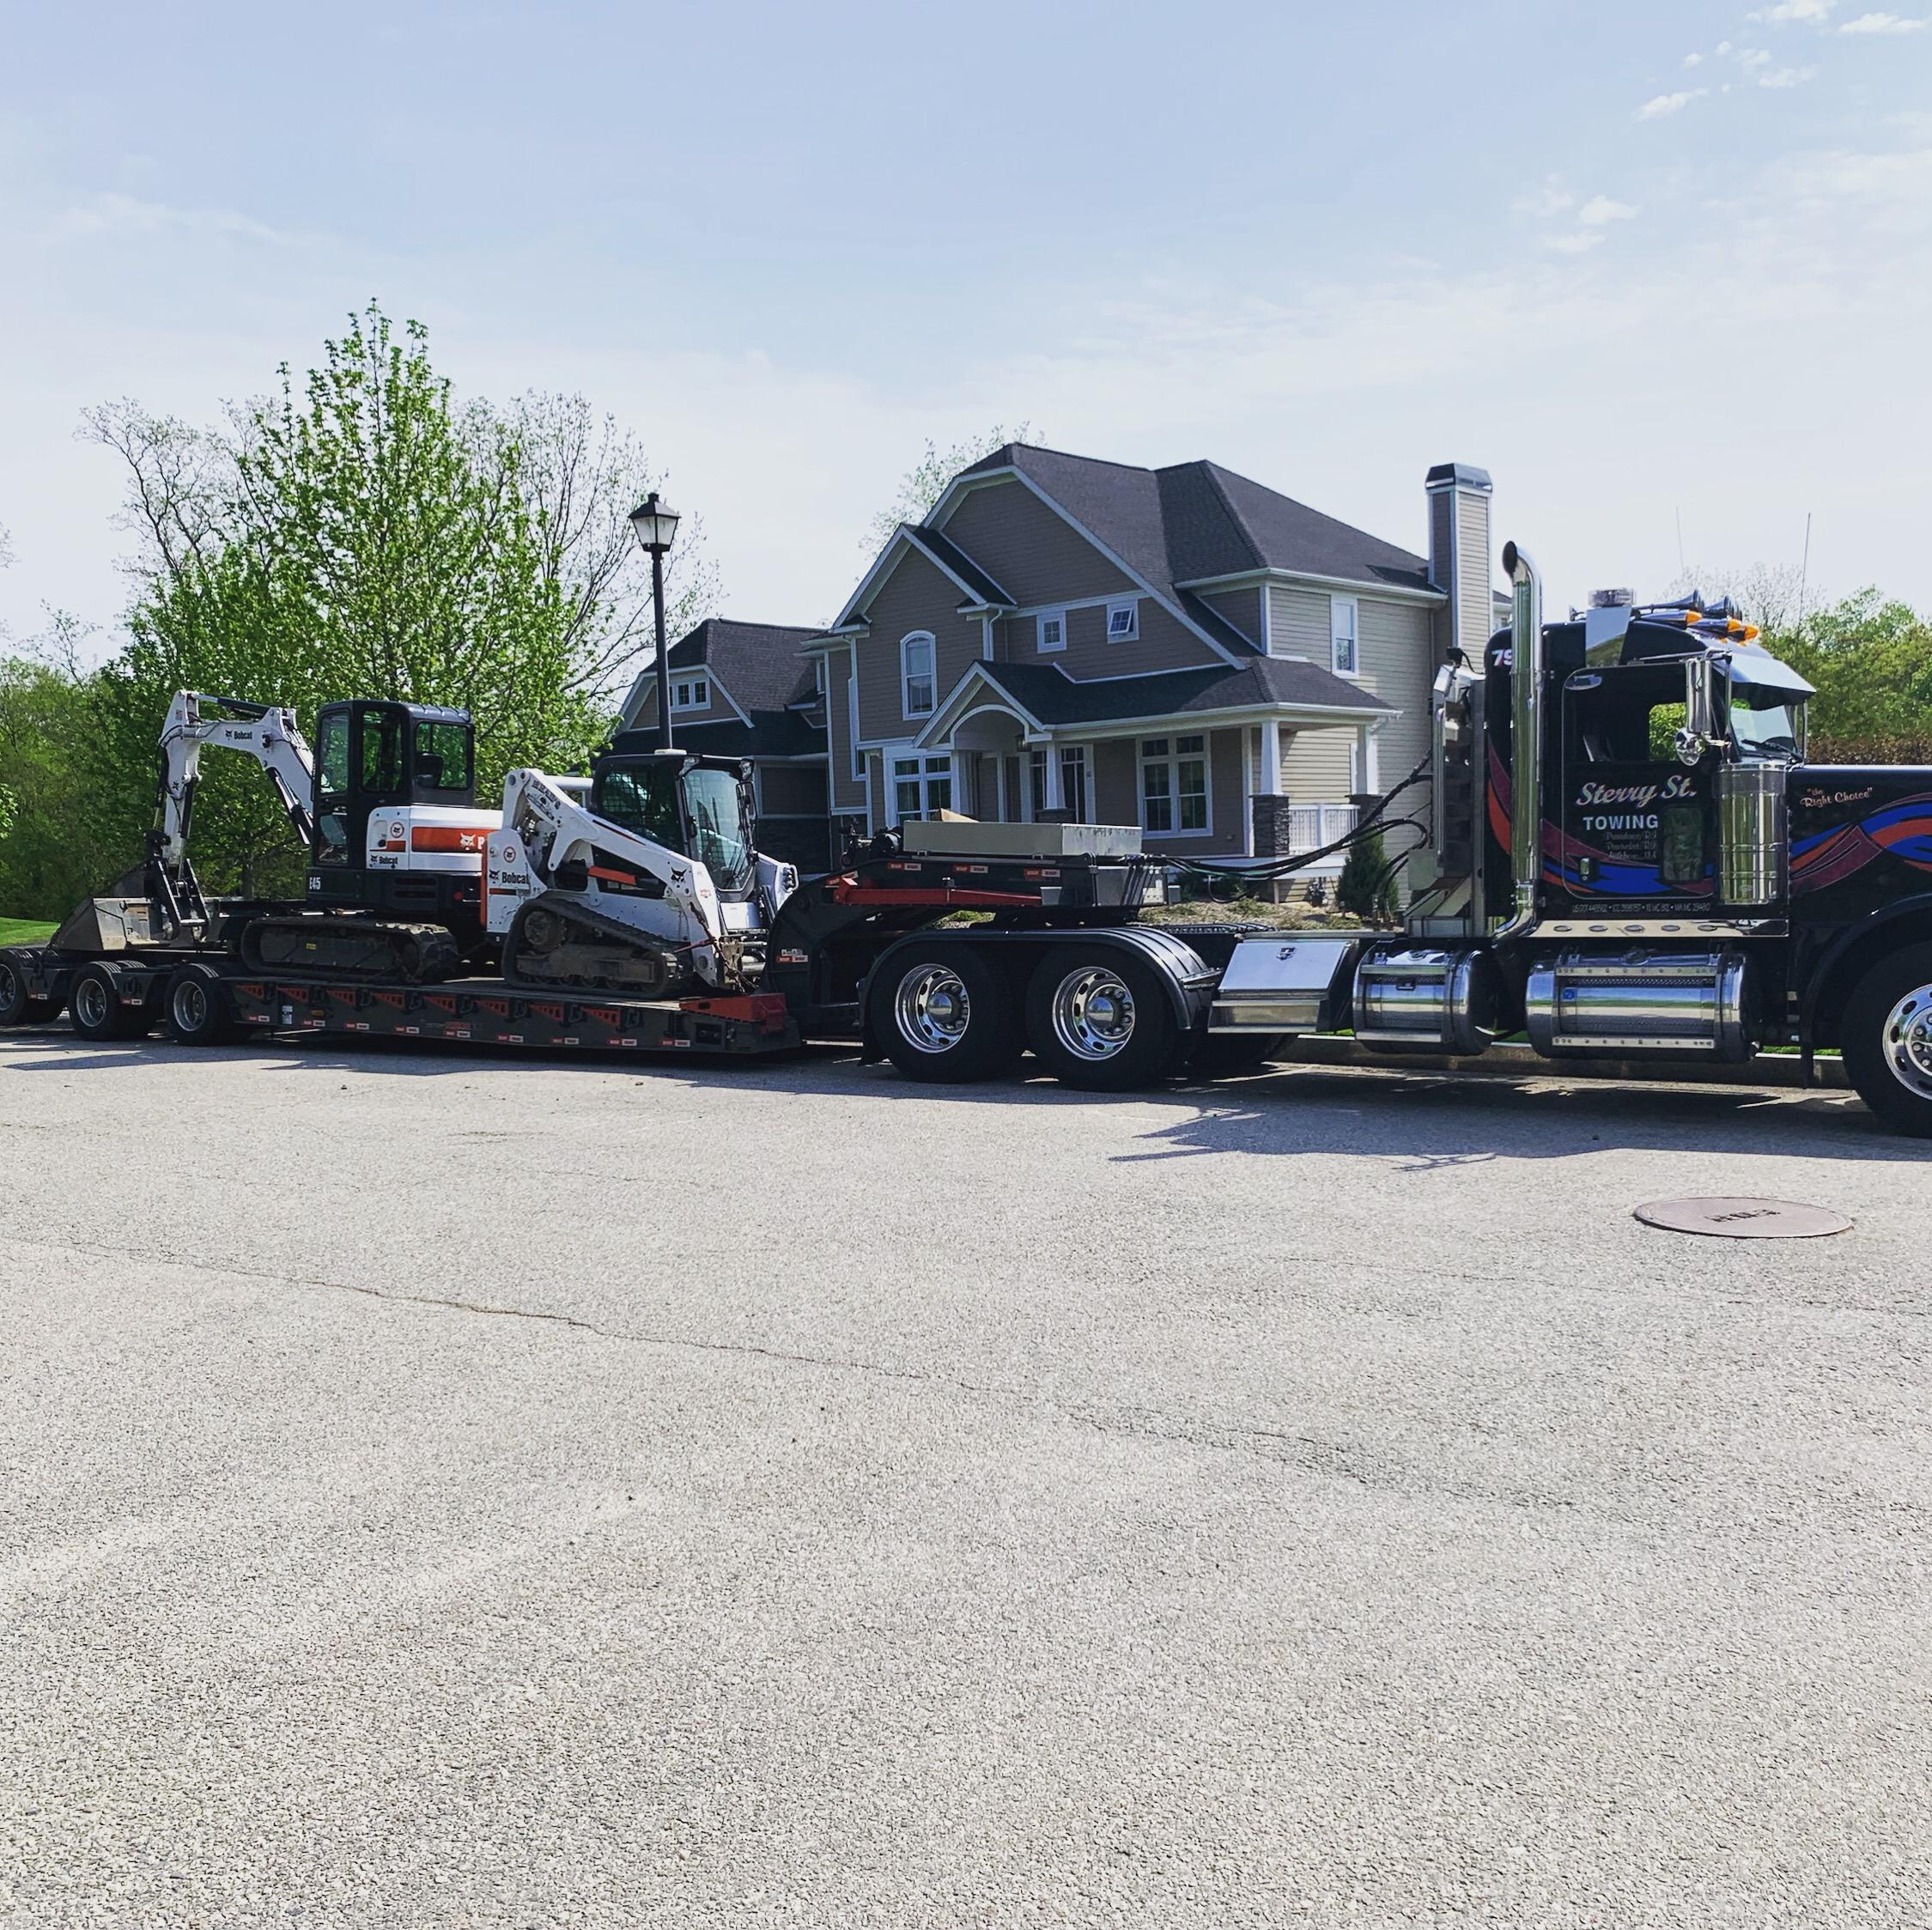 Sterry Street Towing